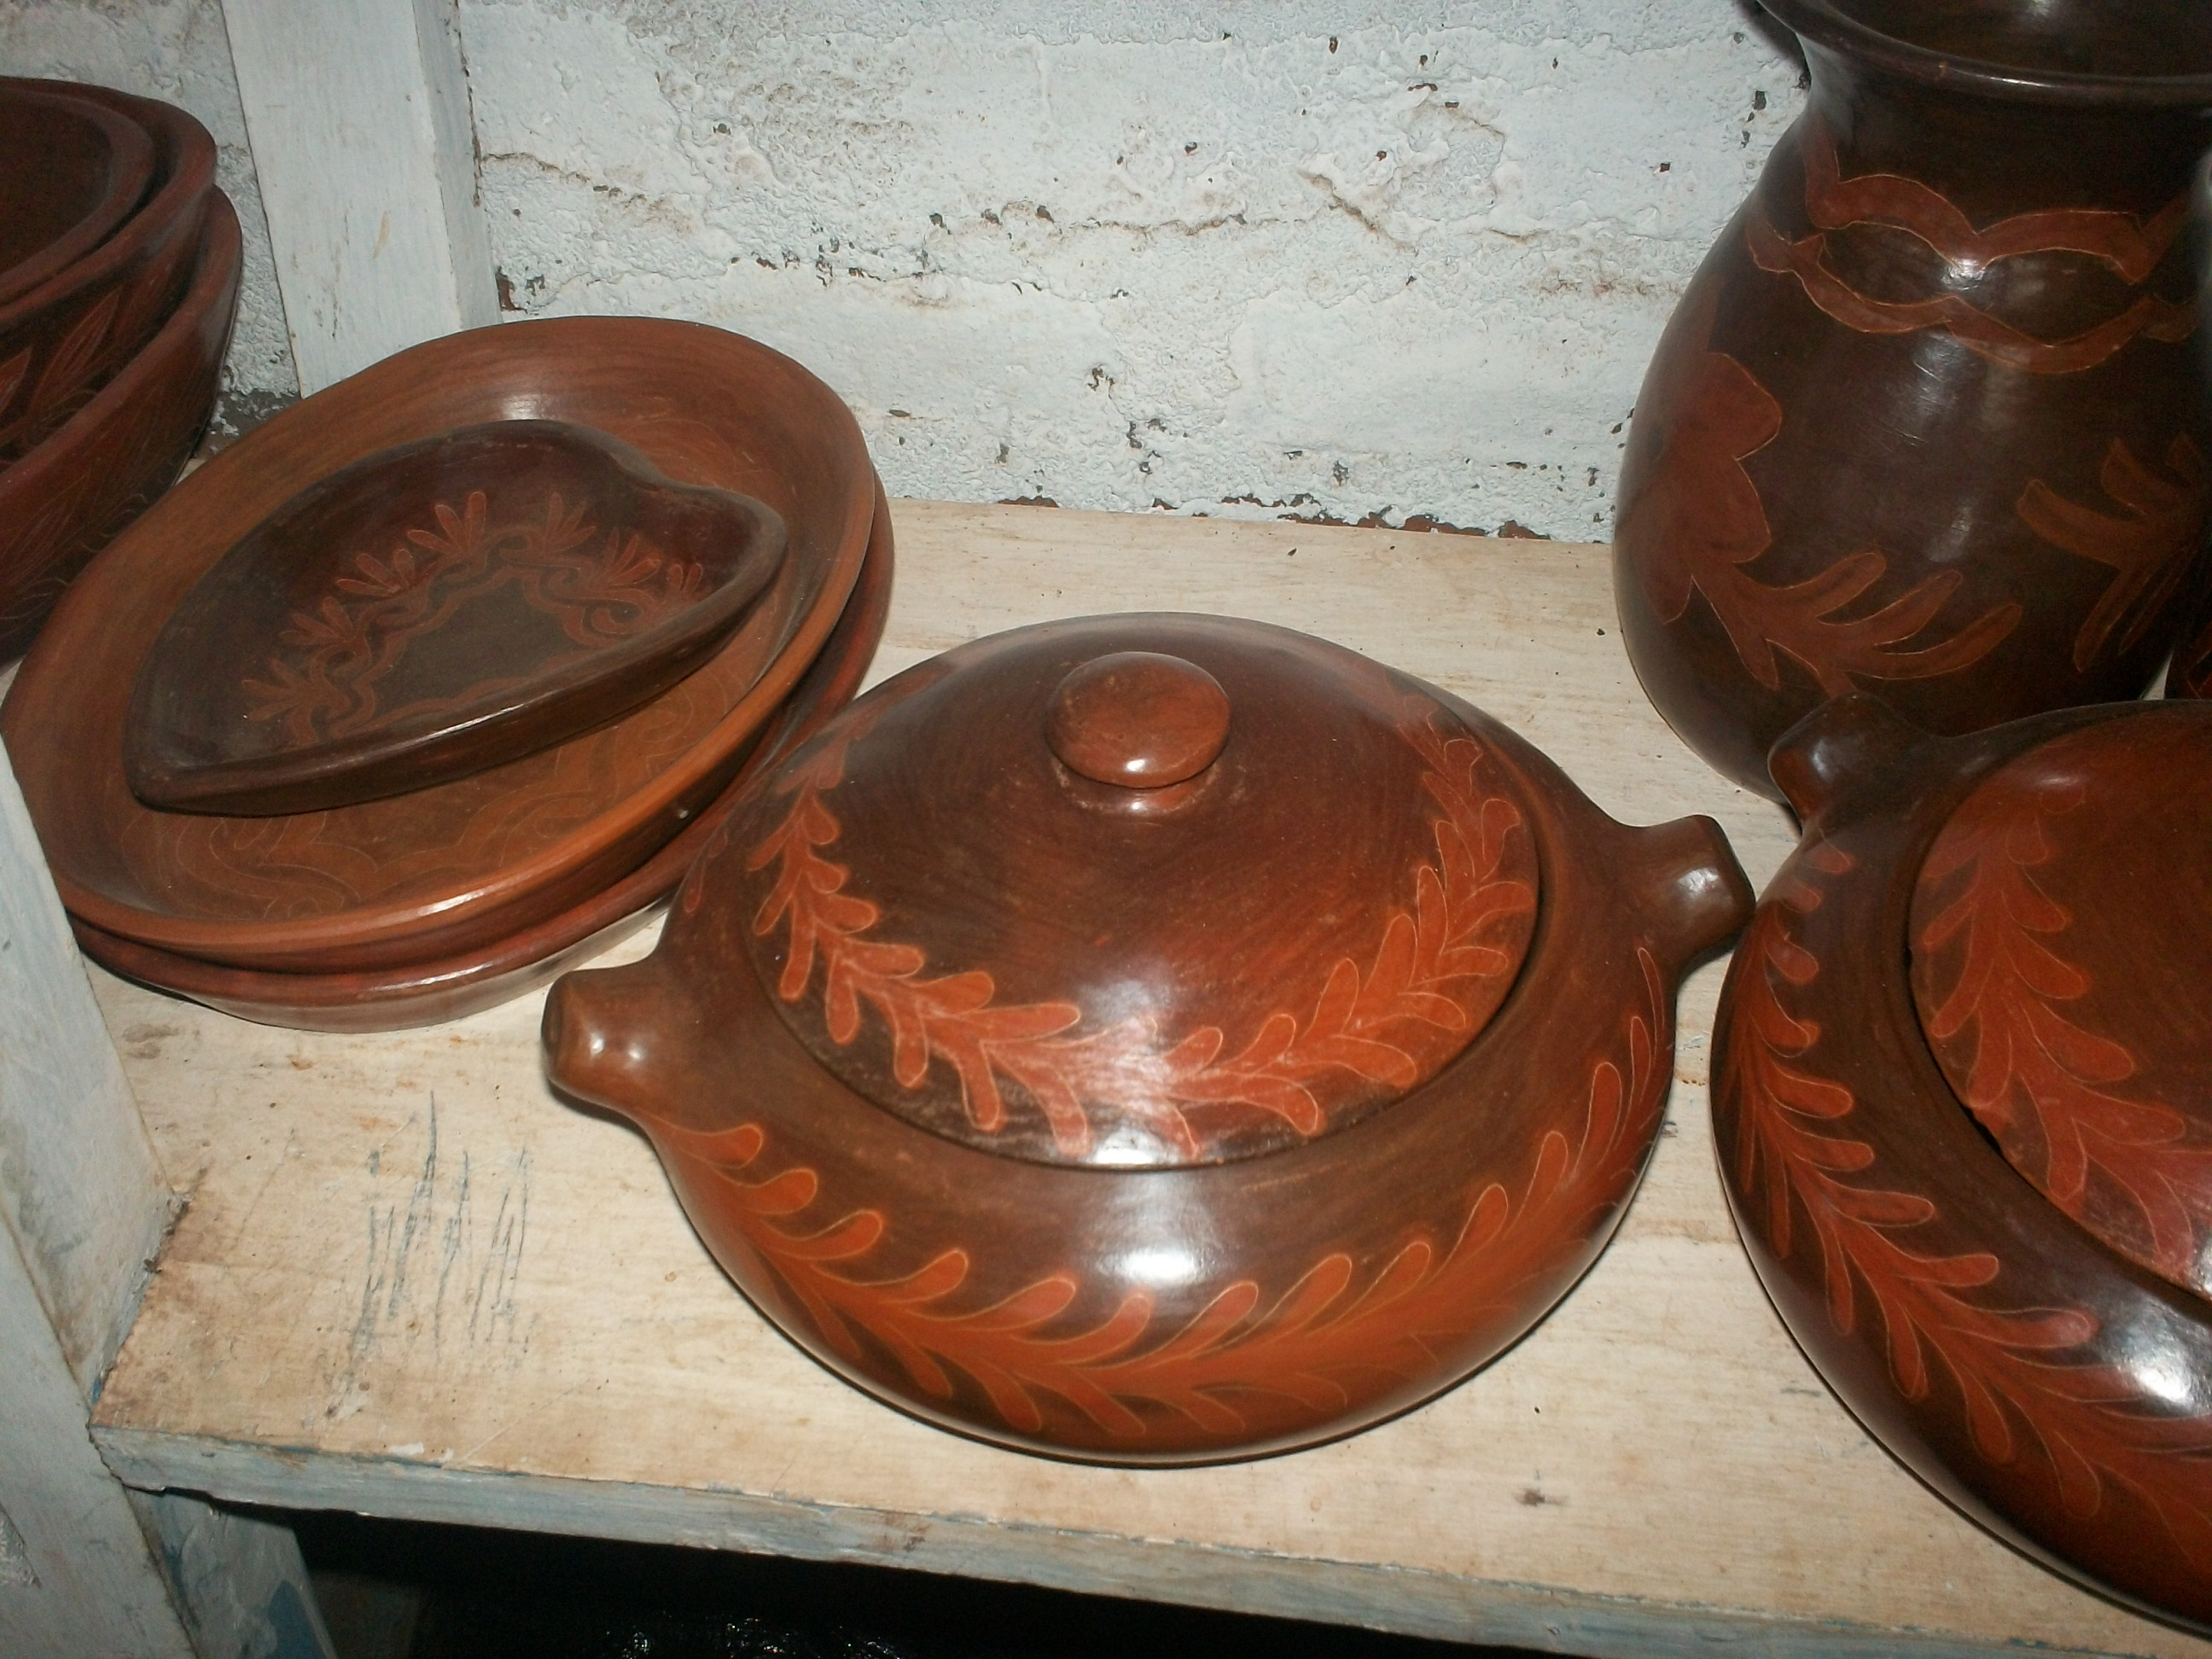 Pottery at Ducuale